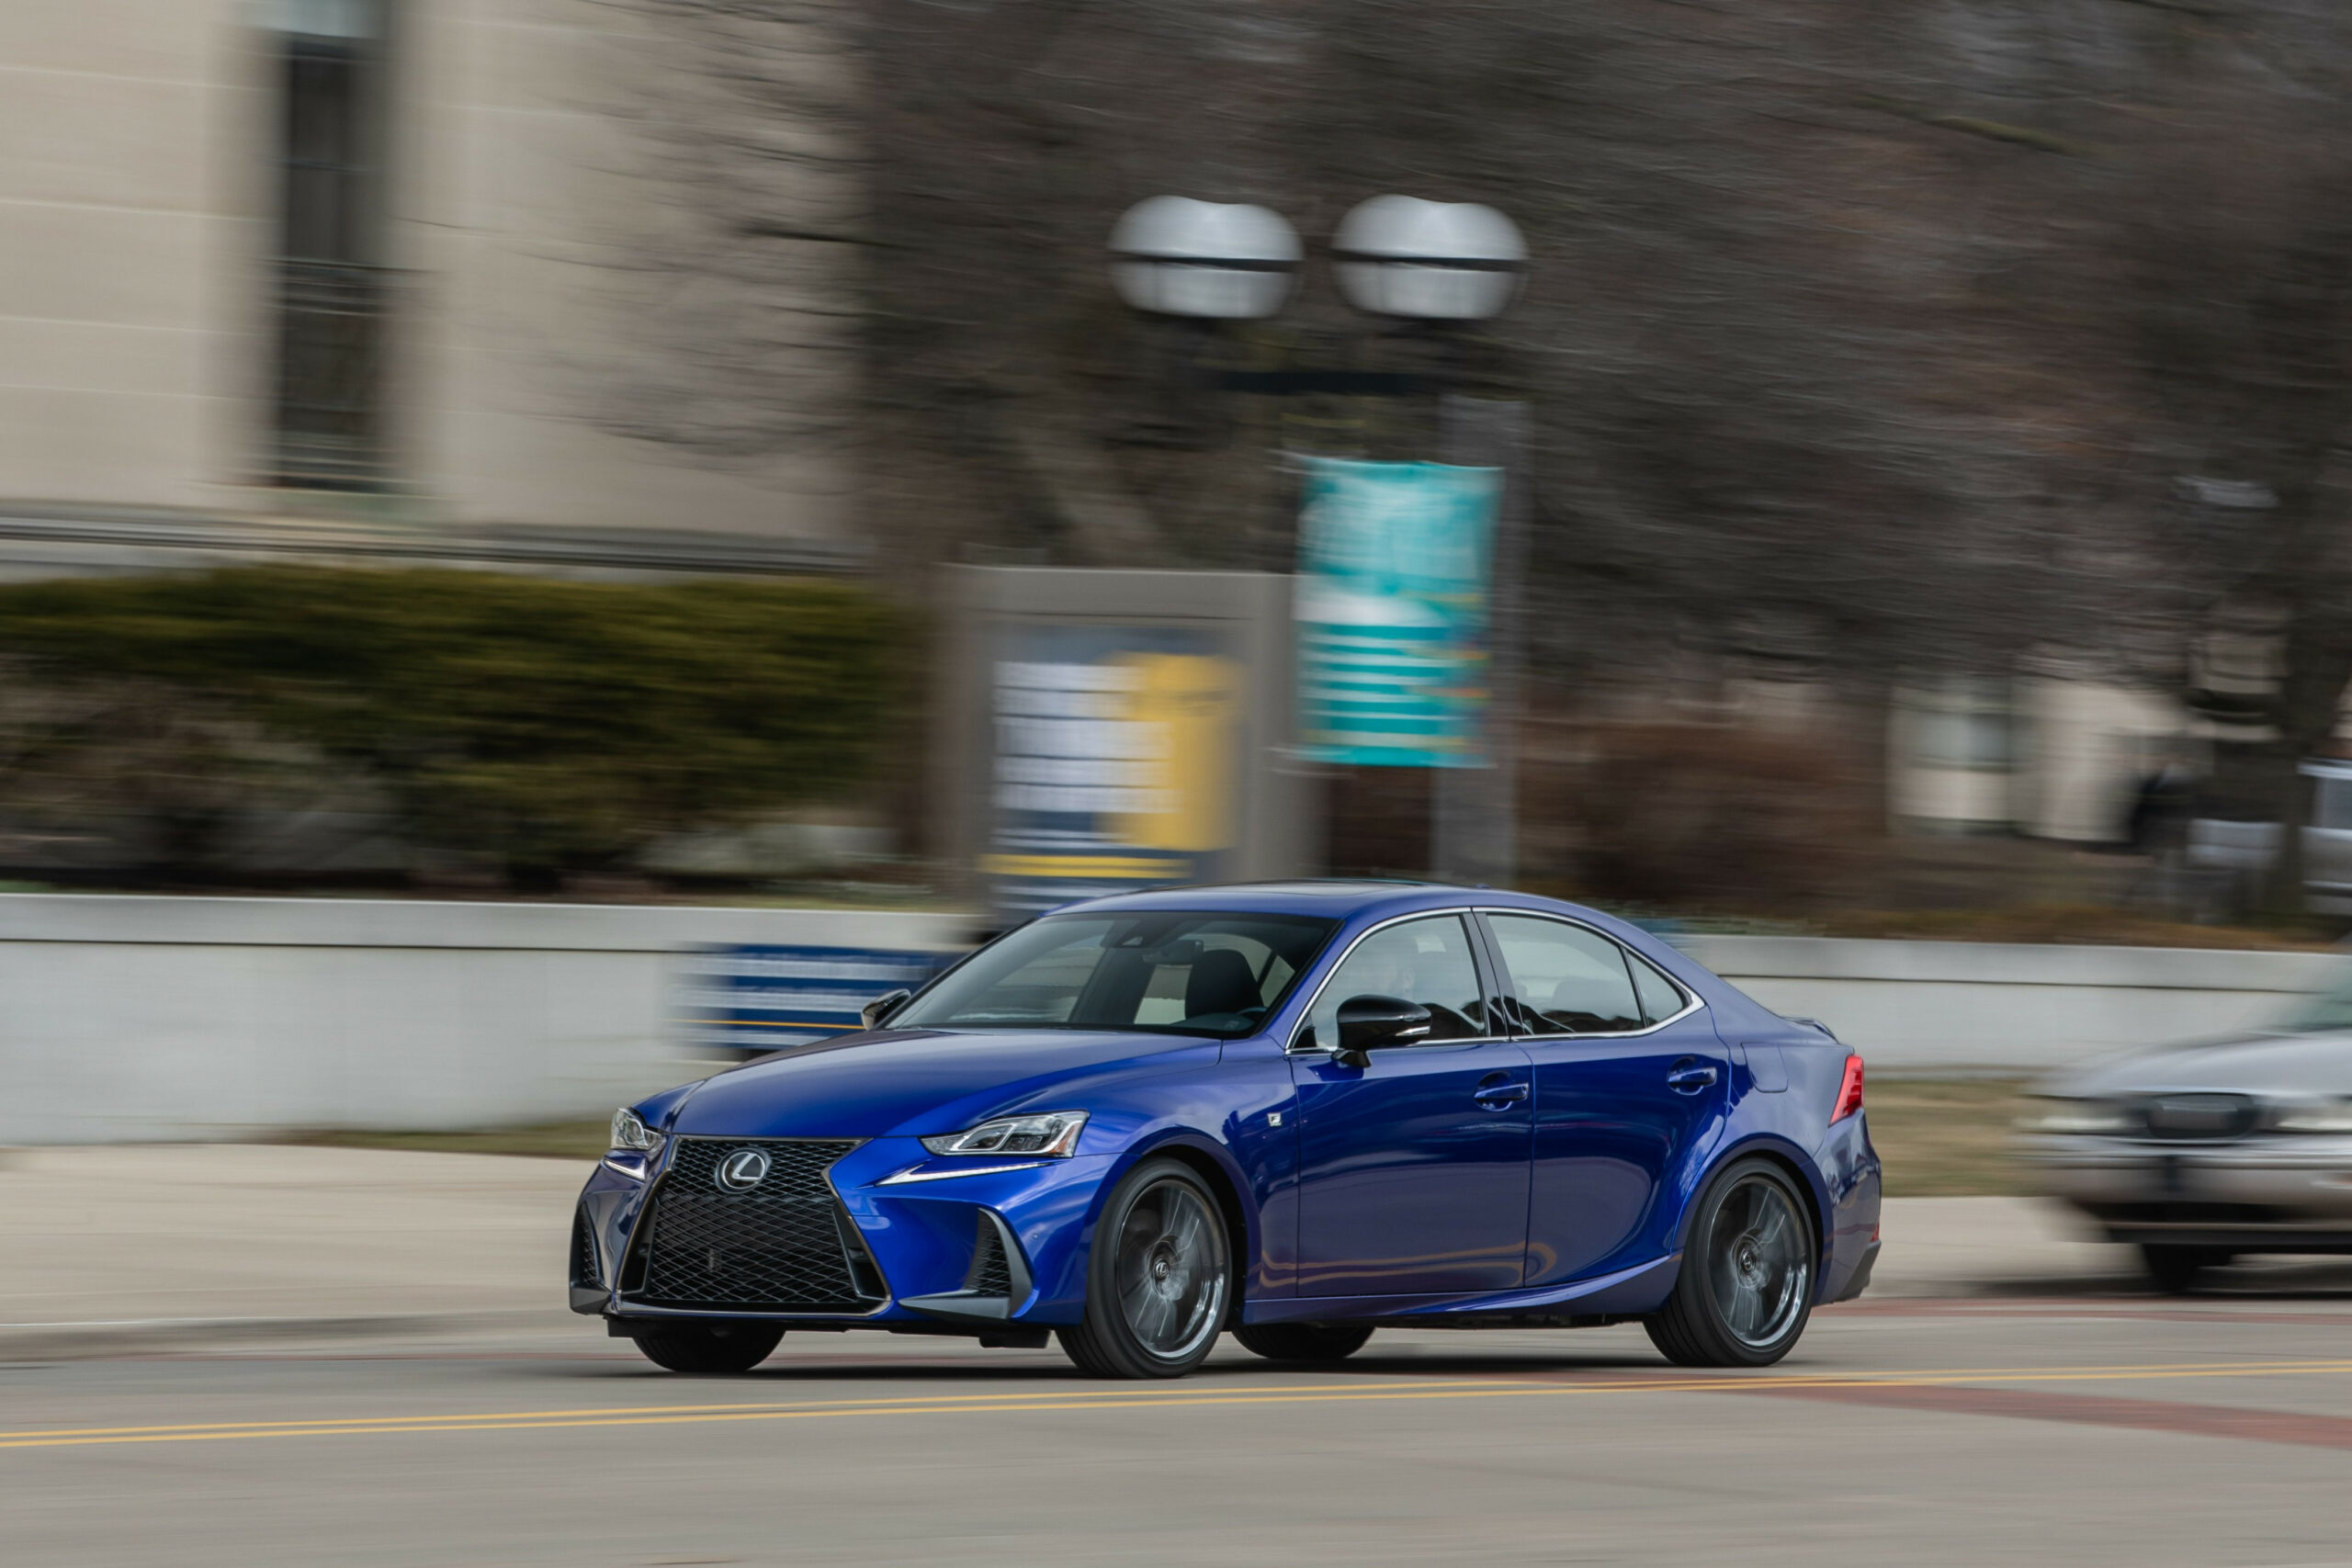 8 Lexus IS Review, Pricing, and Specs - lexus is review 2020